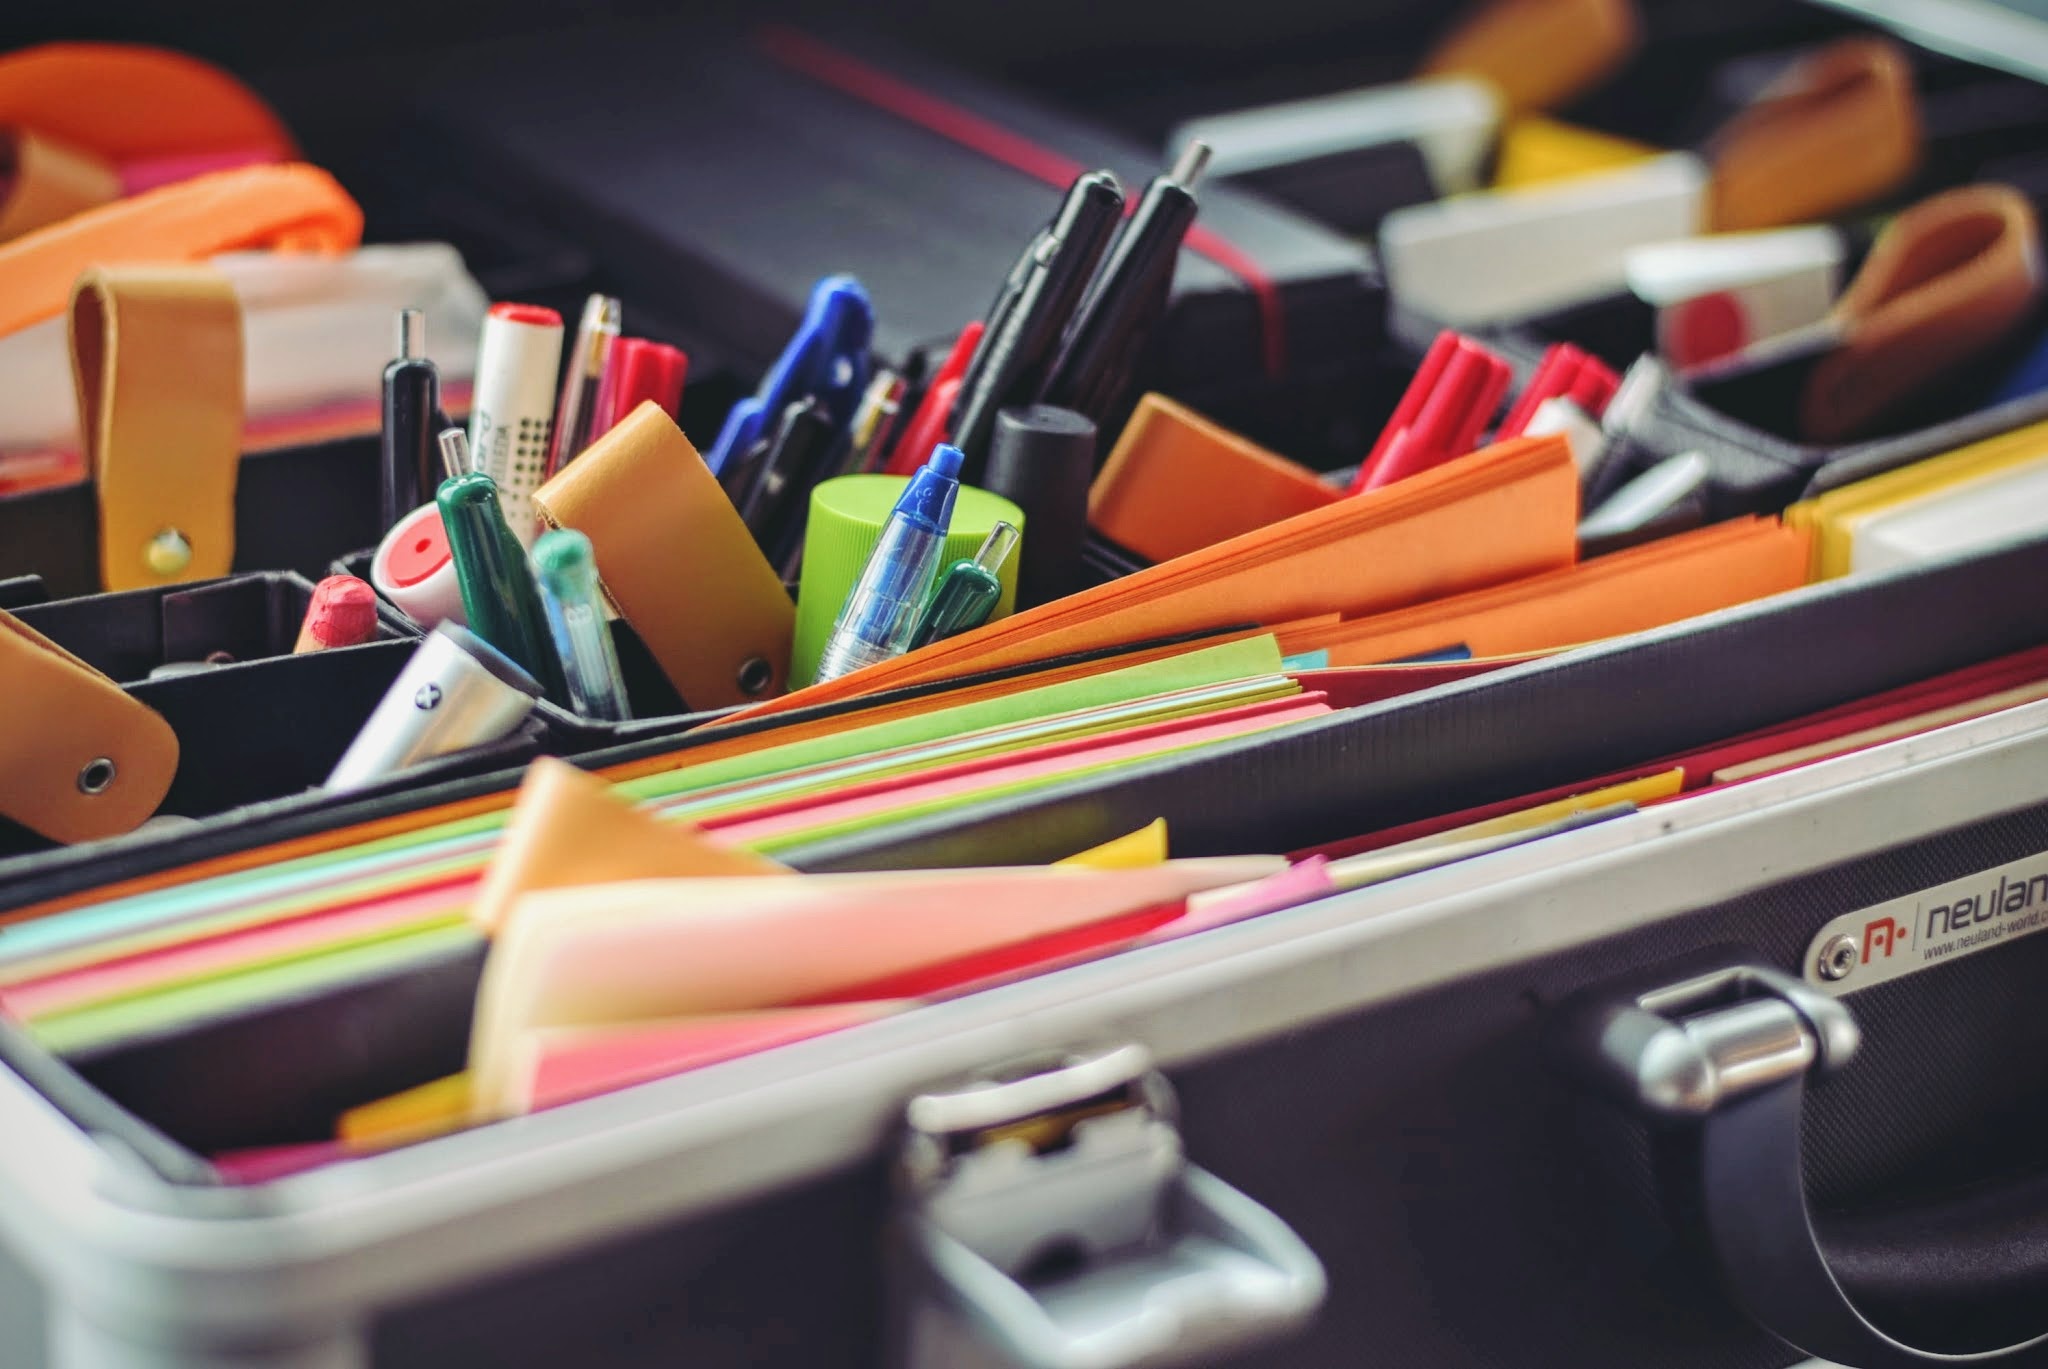 We can think so much better when we de-clutter and organize our life.